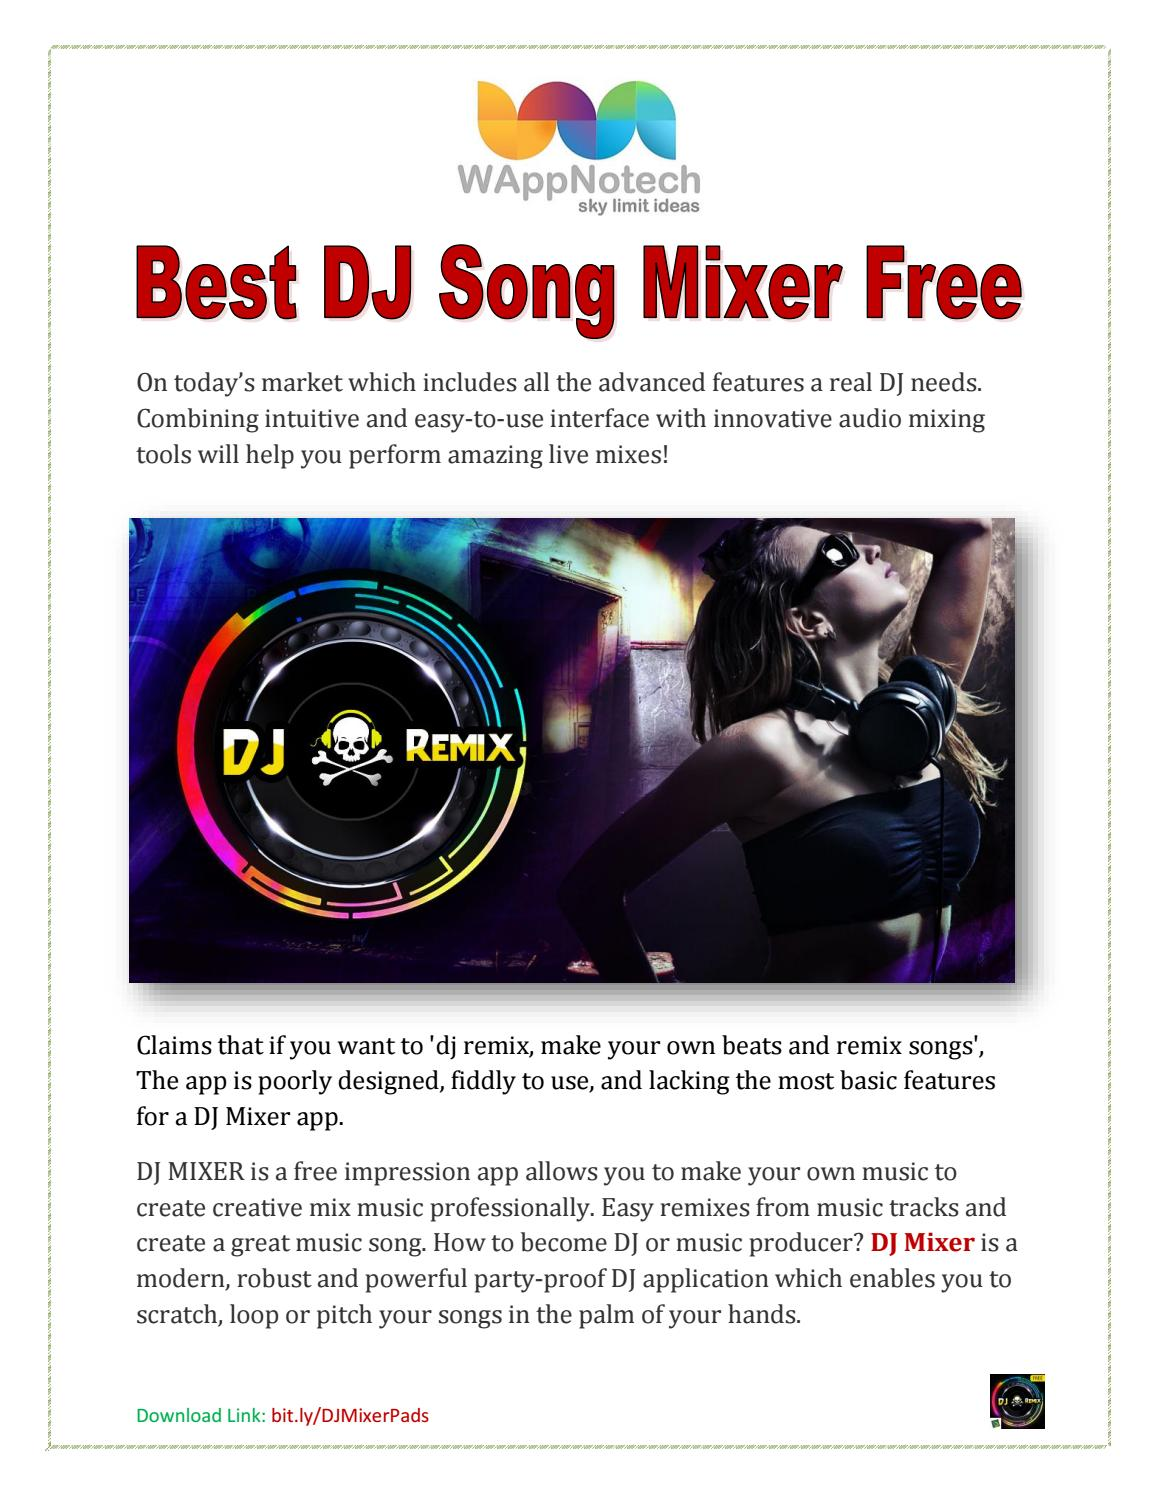 Best dj song mixer android app by Charlie Smith - issuu